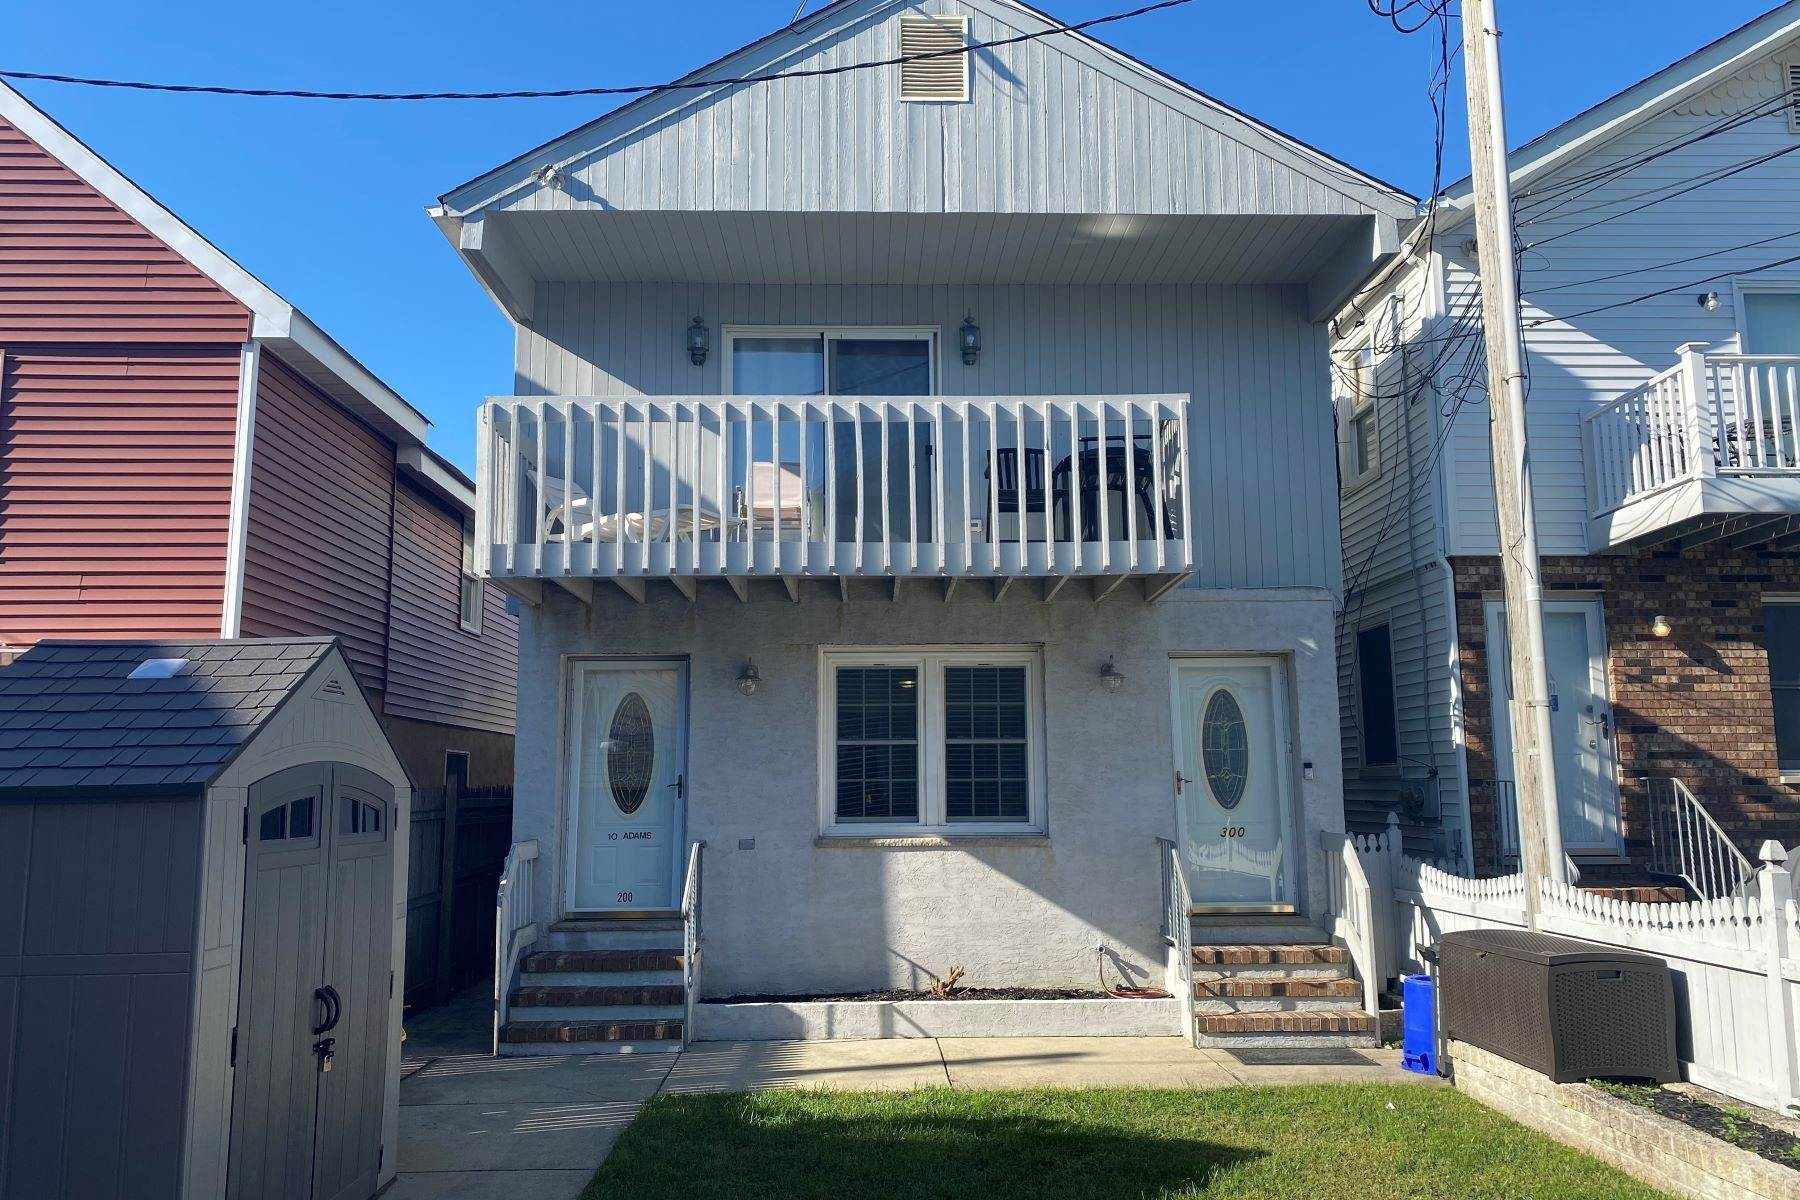 Condominiums for Sale at 10 S Adams Ave Unit 200 10 S Adams Ave, Unit 200 Margate, New Jersey 08402 United States